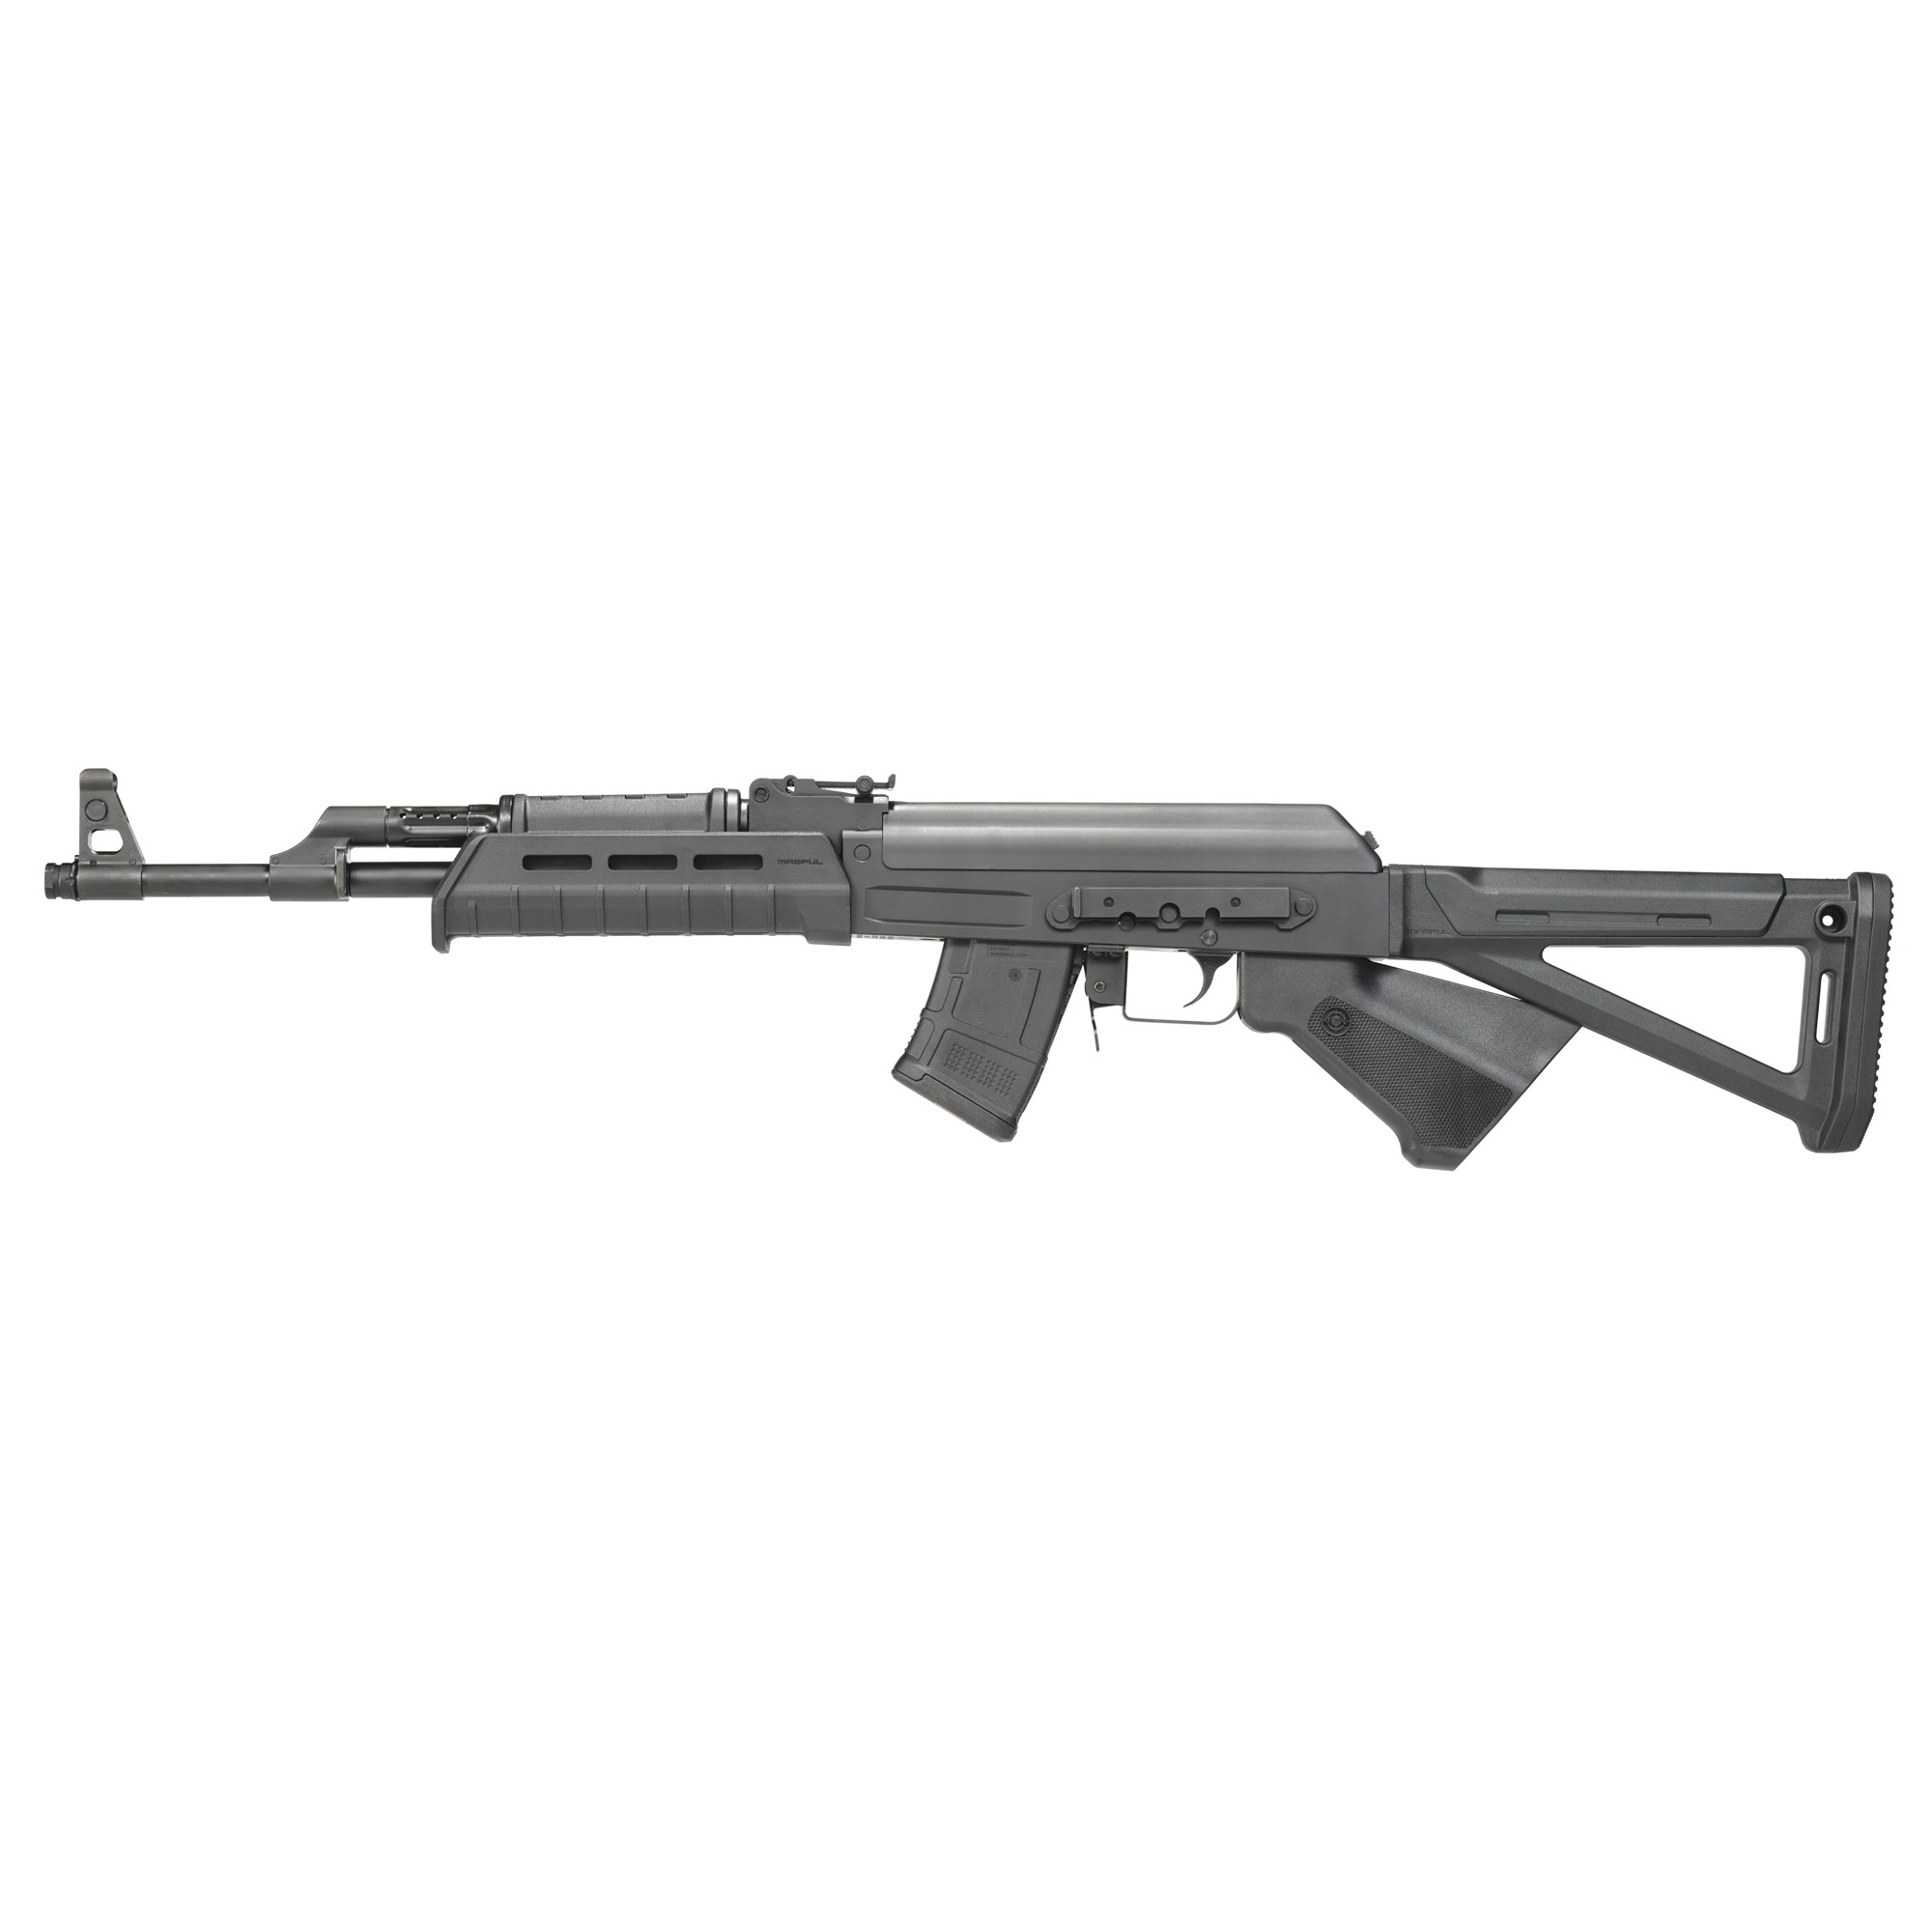 """The C39V2"""" milled from 4140 ordnance quality steel"""" is the premier milled AK rifle available. The rifle includes multiple unique upgrades over standard models and sets the standard for milled AK rifles. The C39V2 is compatible with AKM accessories and after market components."""